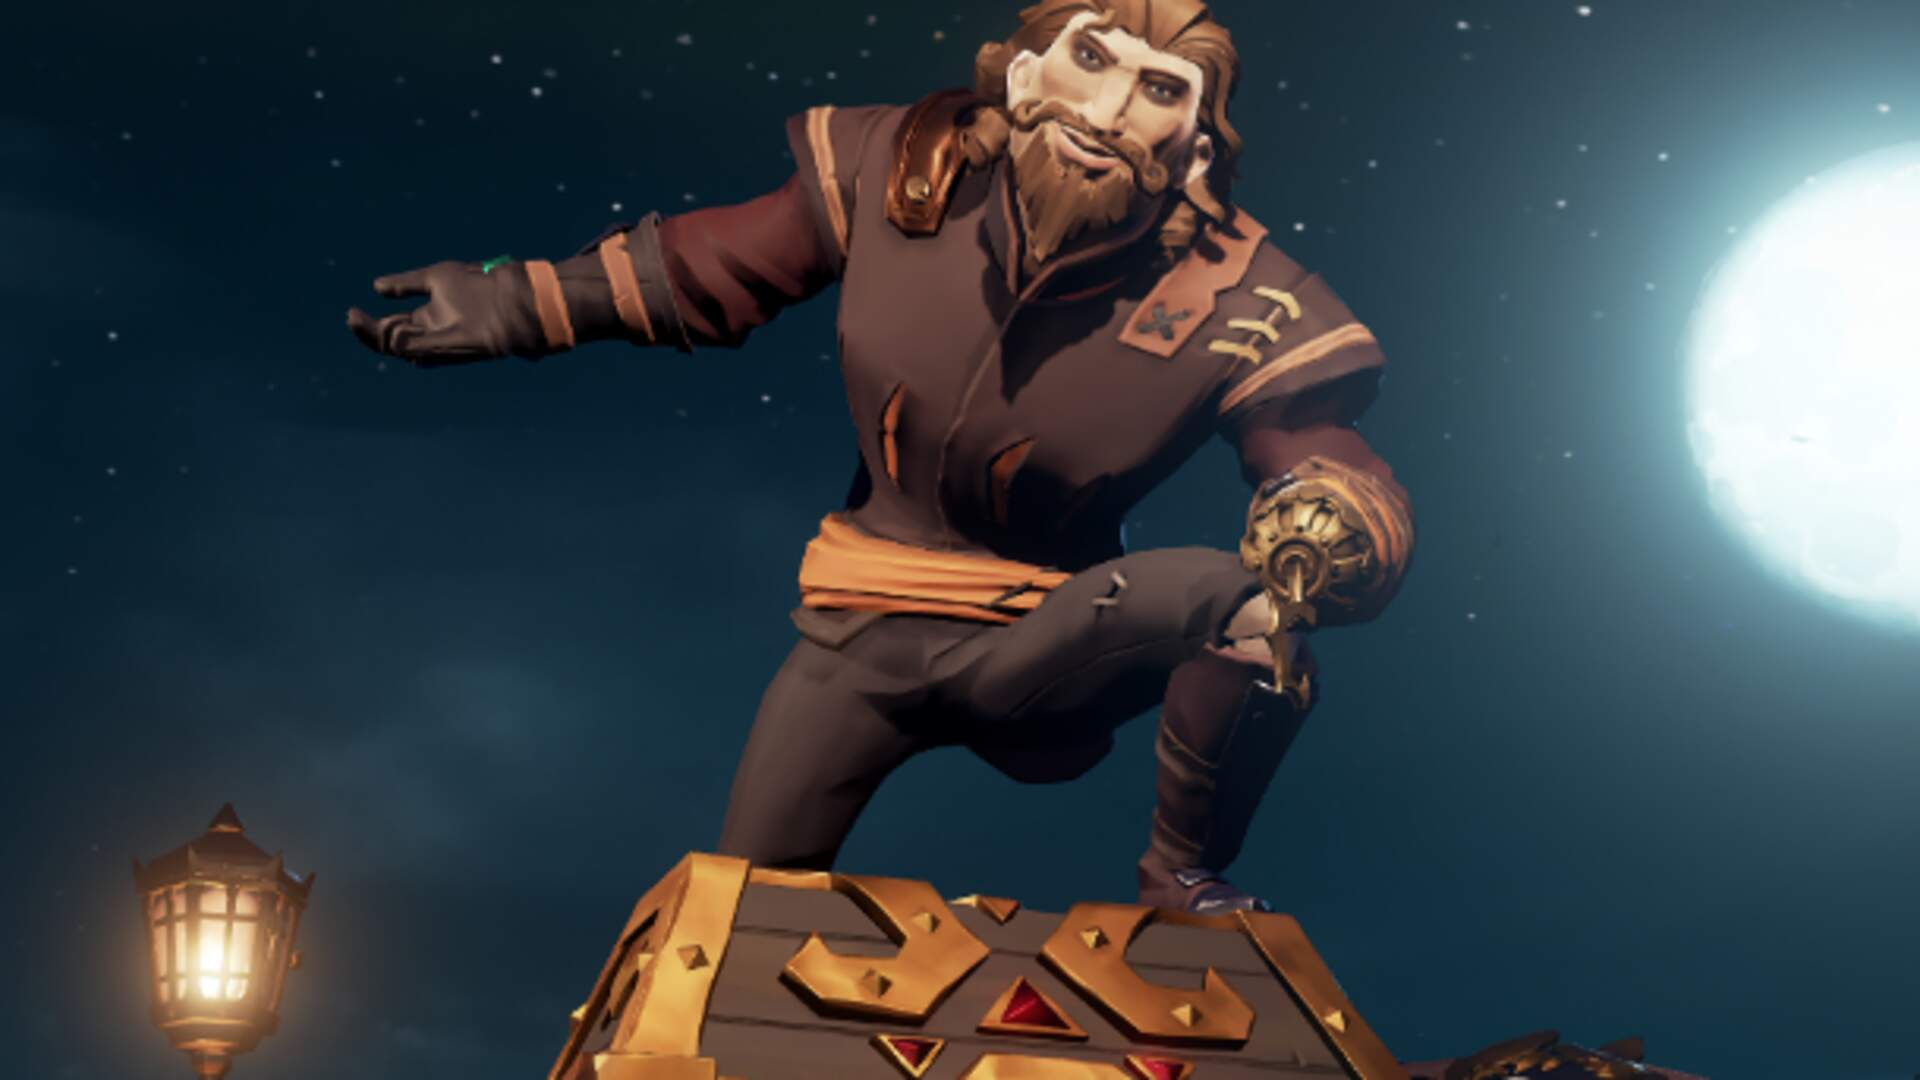 5 Things We Want From Sea of Thieves' Post-Launch Content